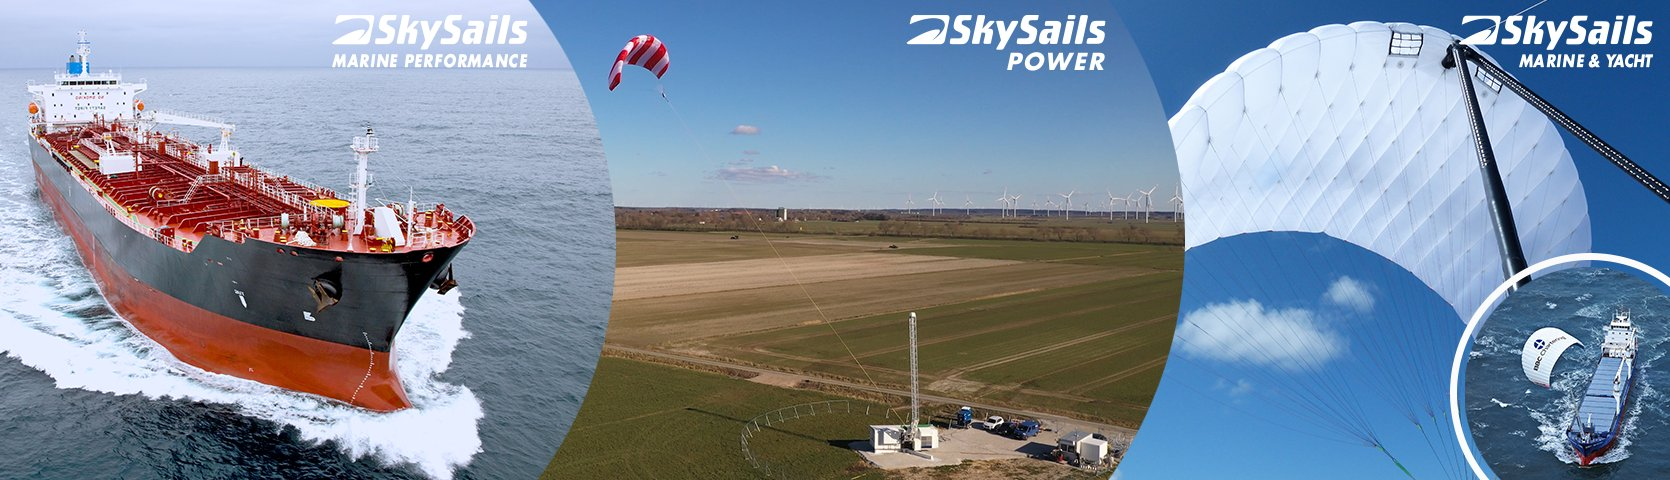 SkySails Group GmbH